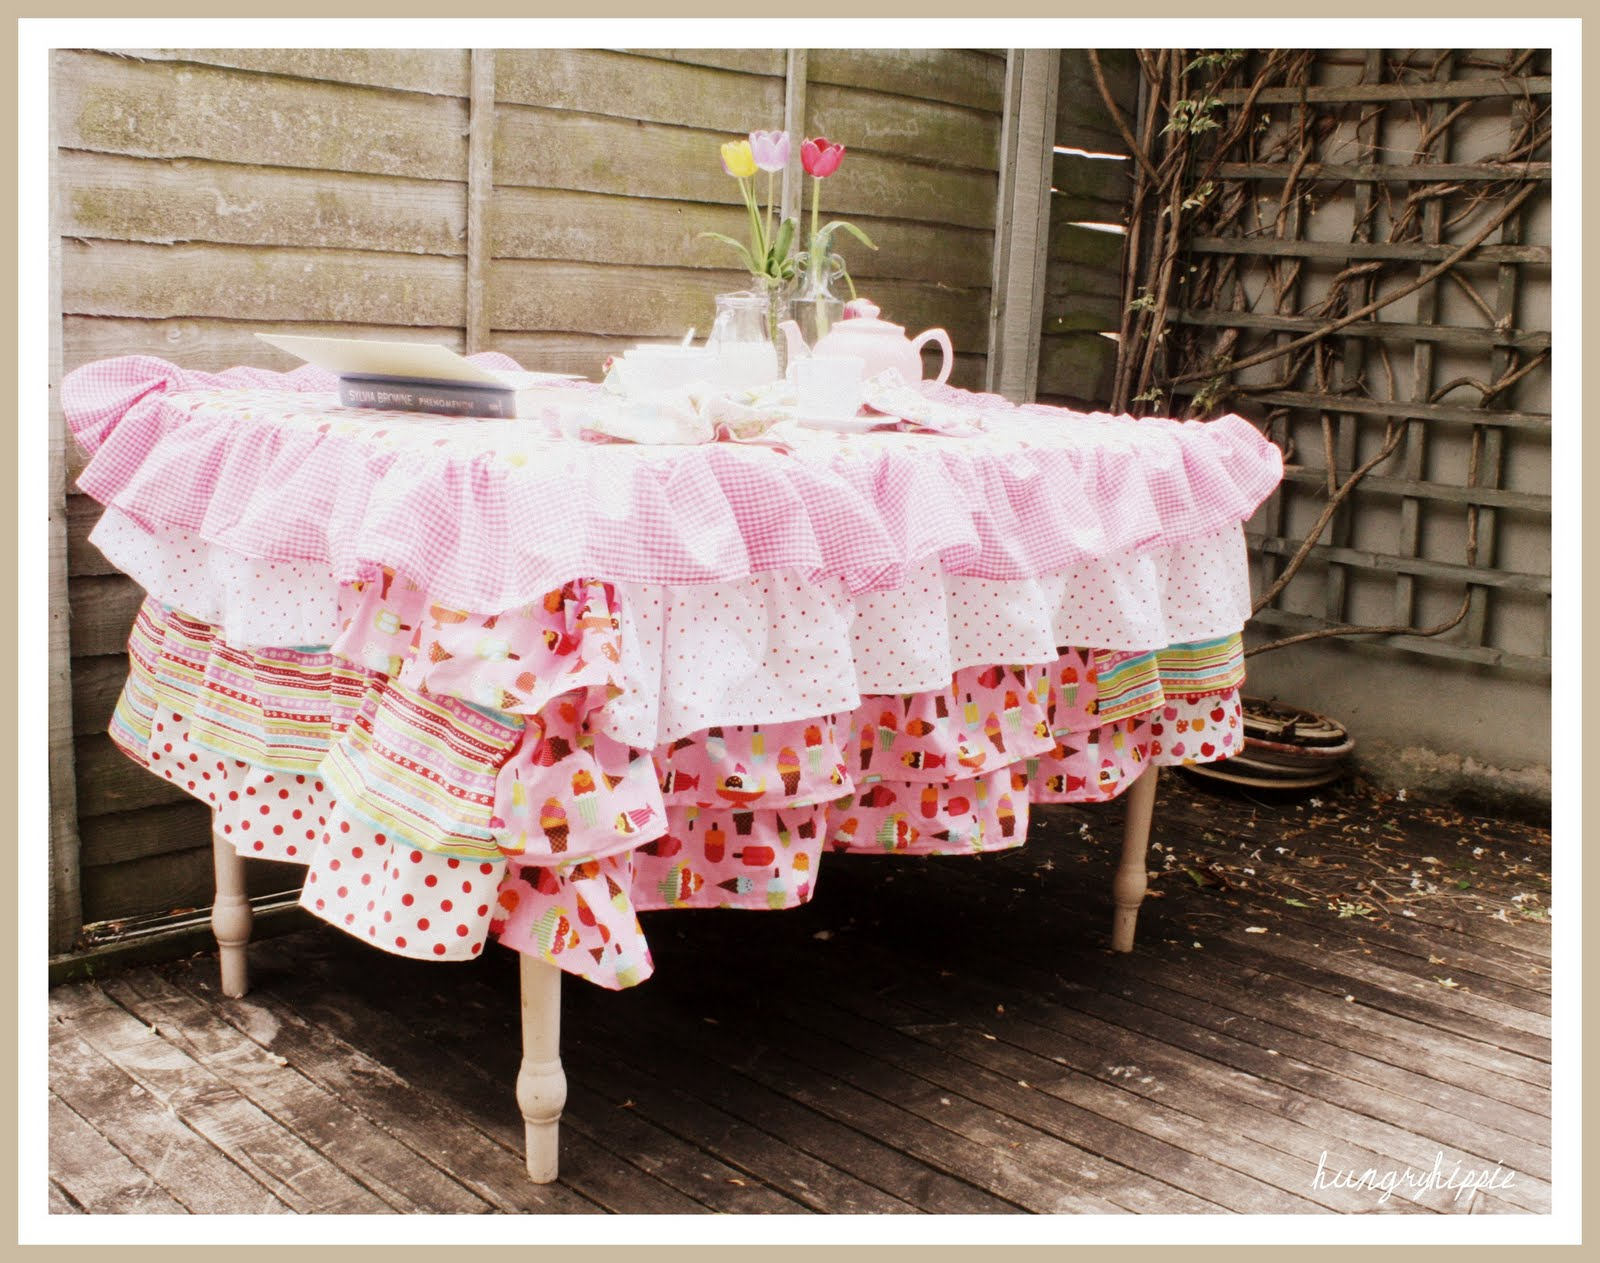 sewhungryhippie: Ruffled Tablecloth Project Ruffled Tablecloth